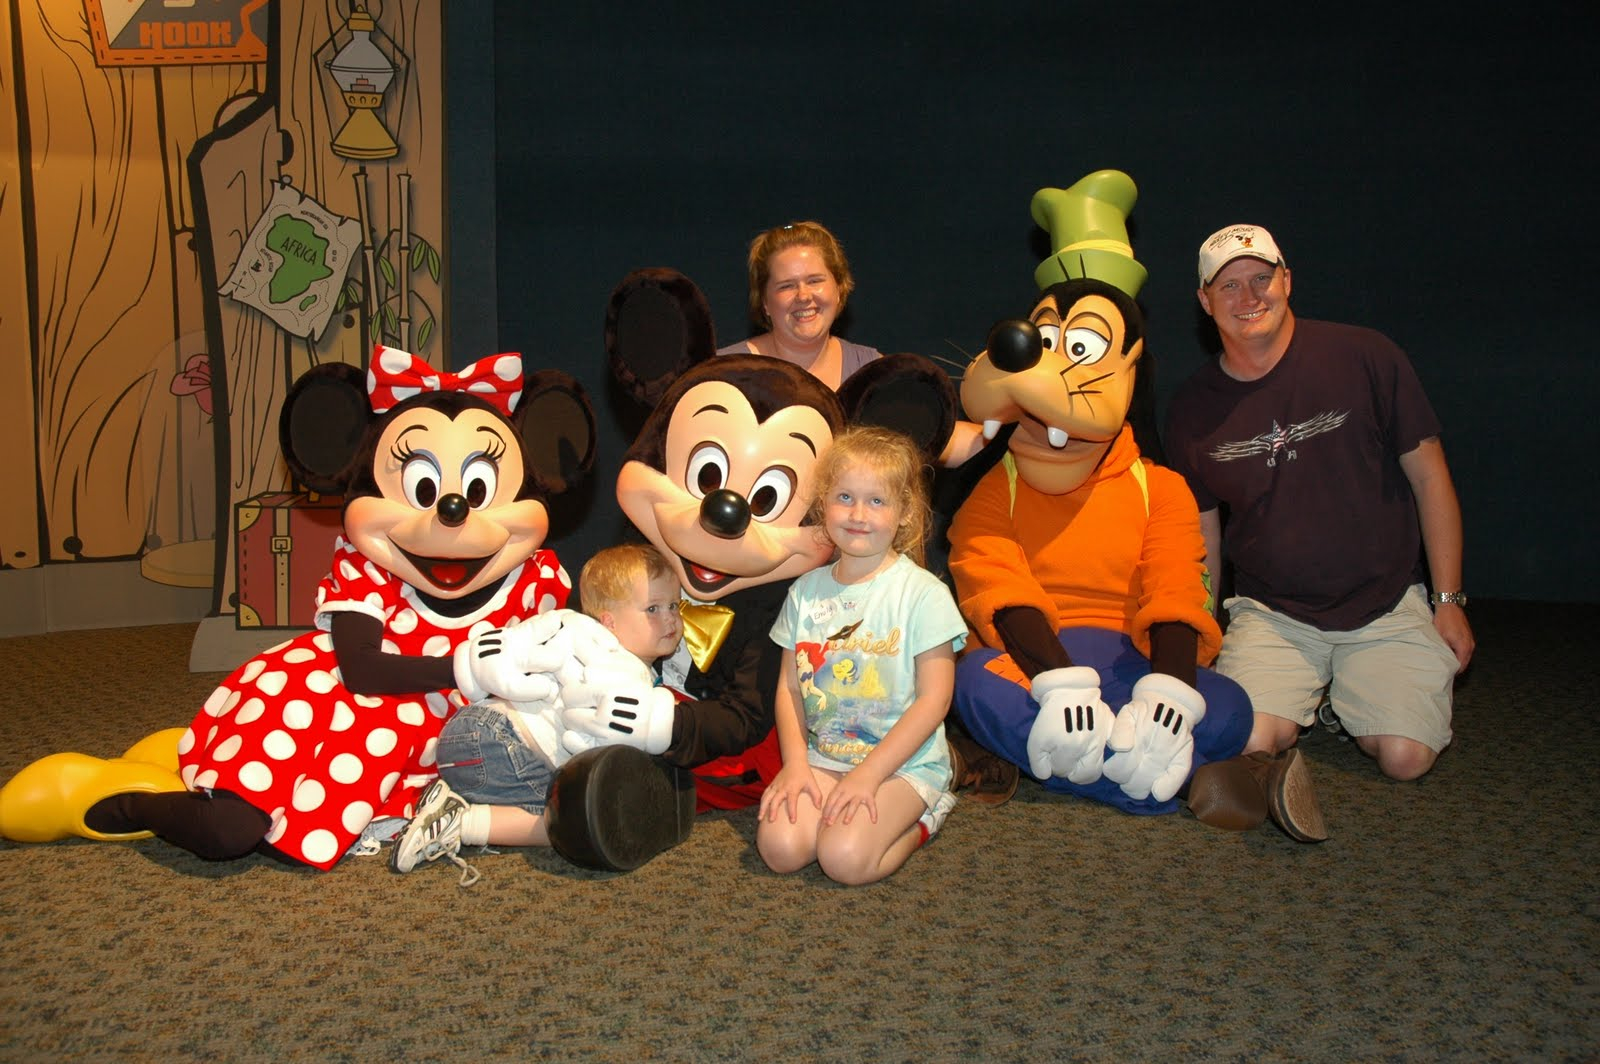 Our disney trip 2009 visa meet and greet in epcot you can read more about it here m4hsunfo